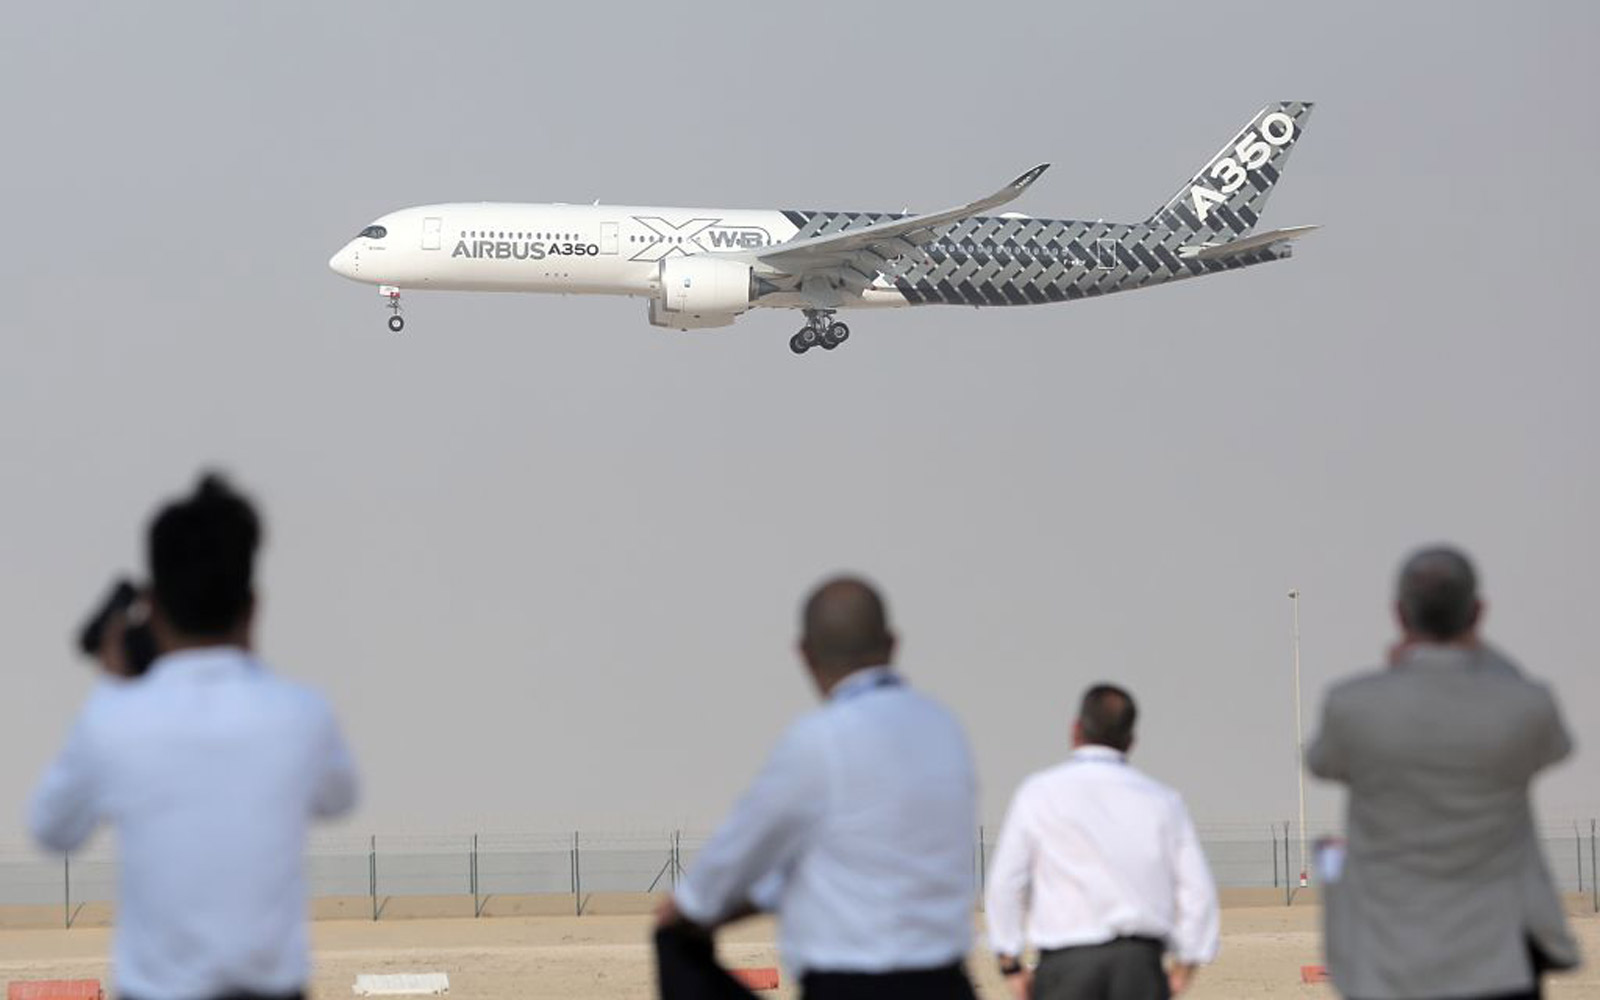 Airbus Just Outdid Boeing With a Massive Airplane Deal